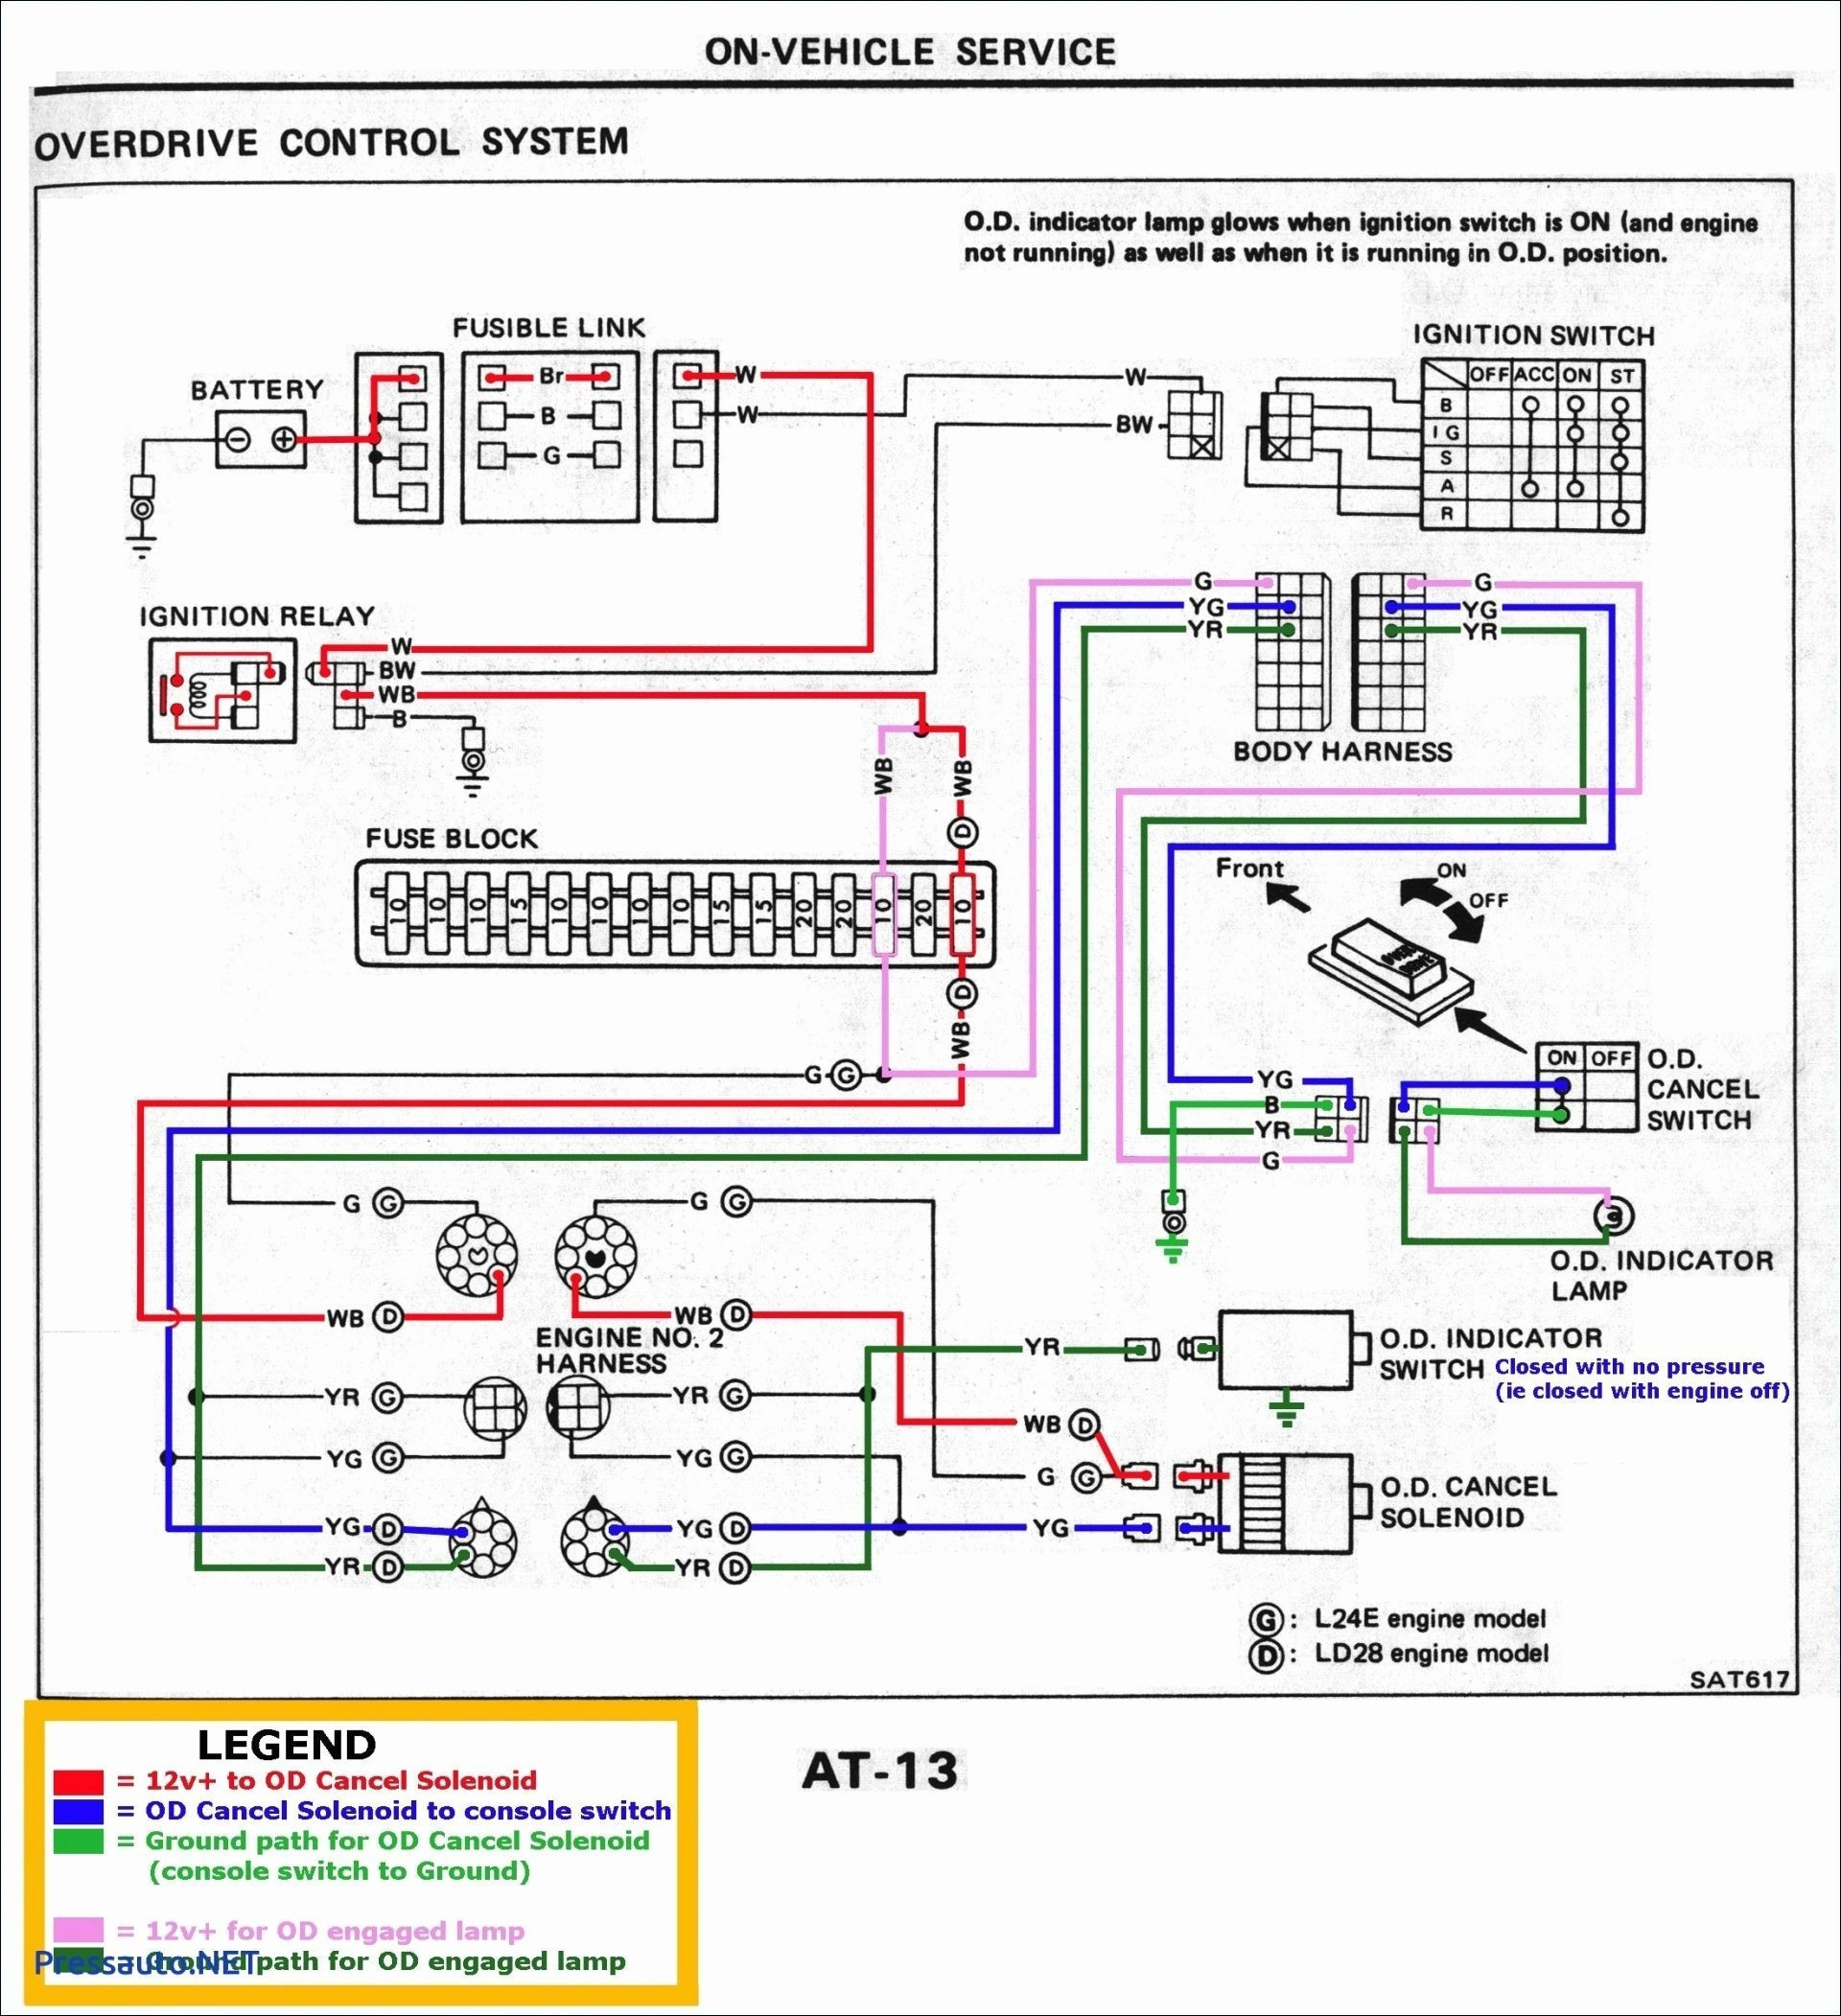 Gas Pump Diagram Gas Furnace Wiring Diagram Valid Best Suburban Gas Furnace Wiring Of Gas Pump Diagram Gas Furnace Wiring Diagram Valid Best Suburban Gas Furnace Wiring